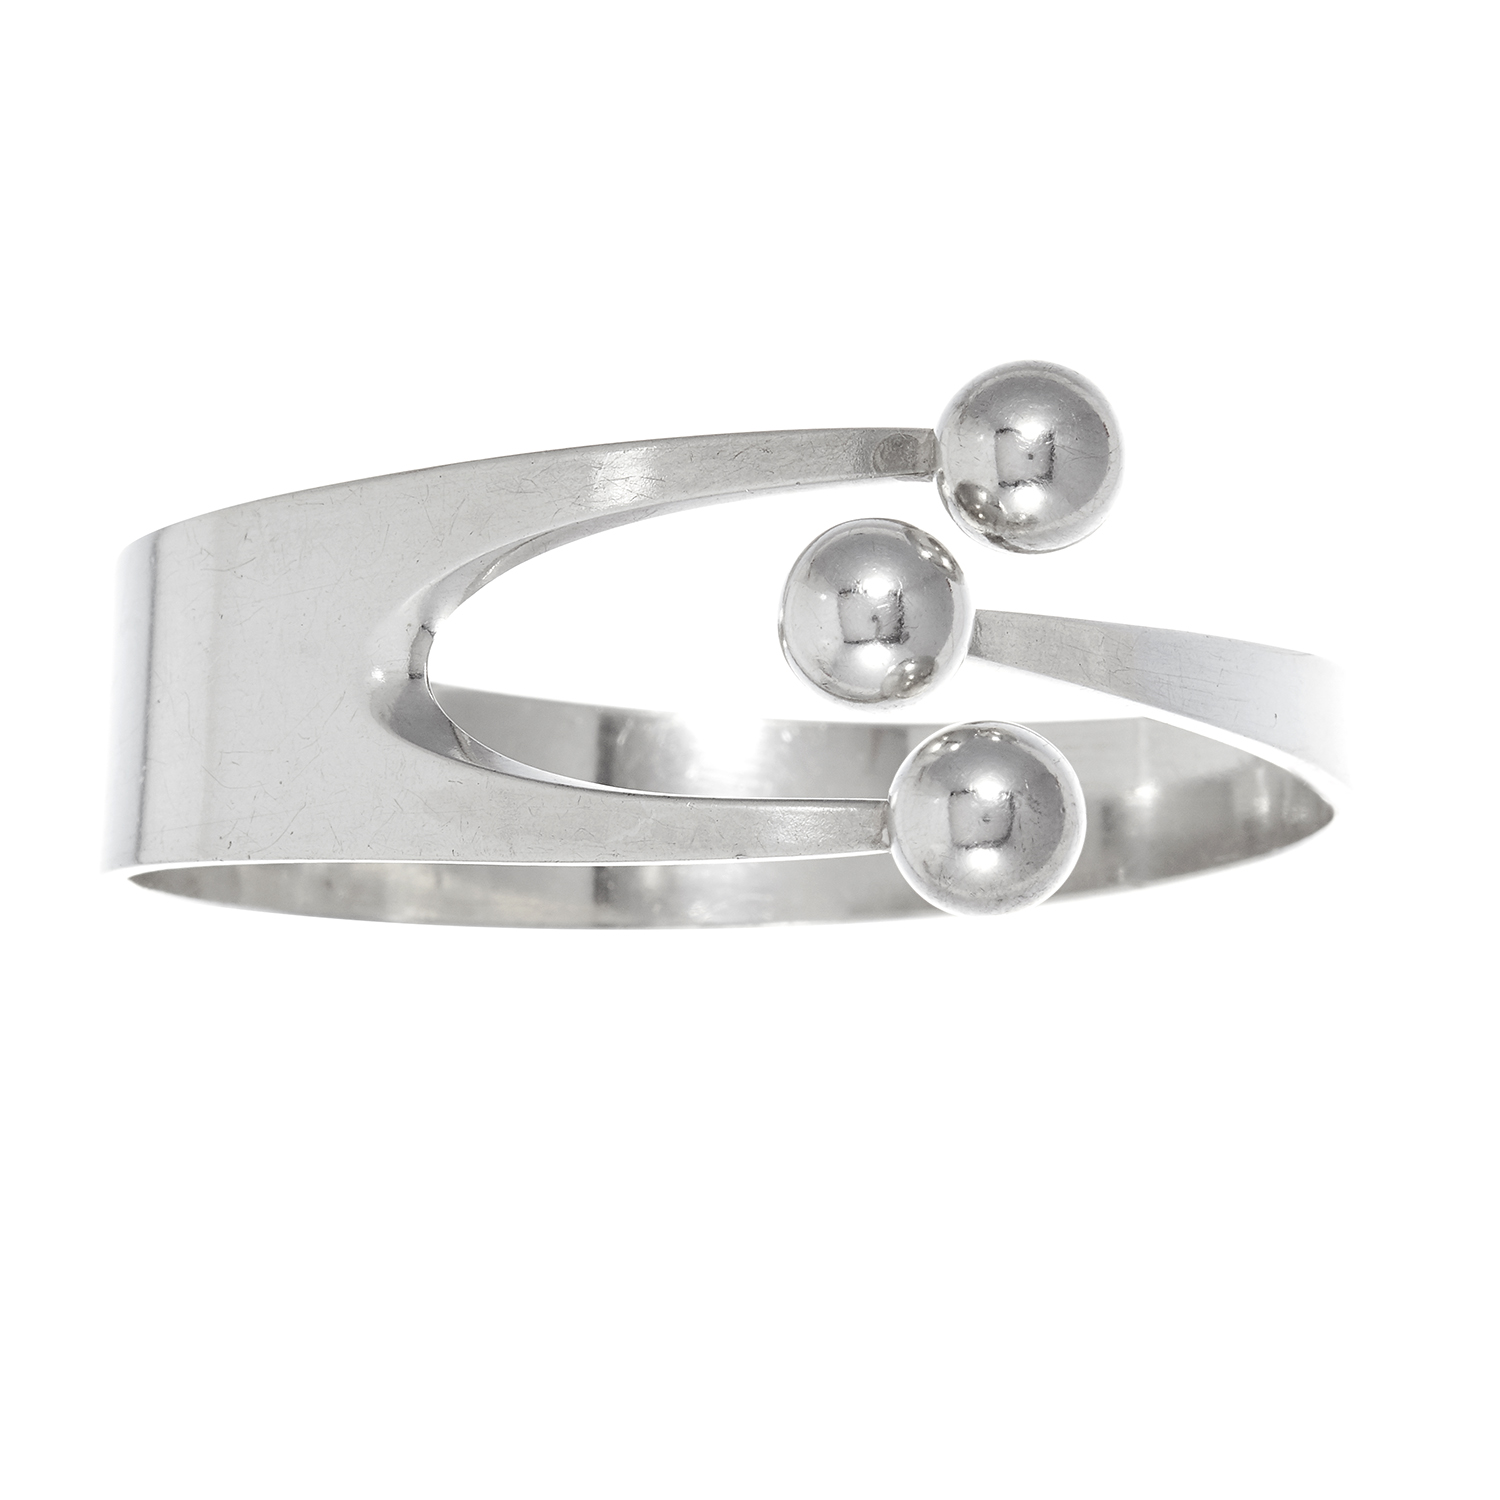 A VINTAGE SCANDINAVIAN JESTER BANGLE AND RING SUITE, ANA GRETA EKER in sterling silver, comprising a